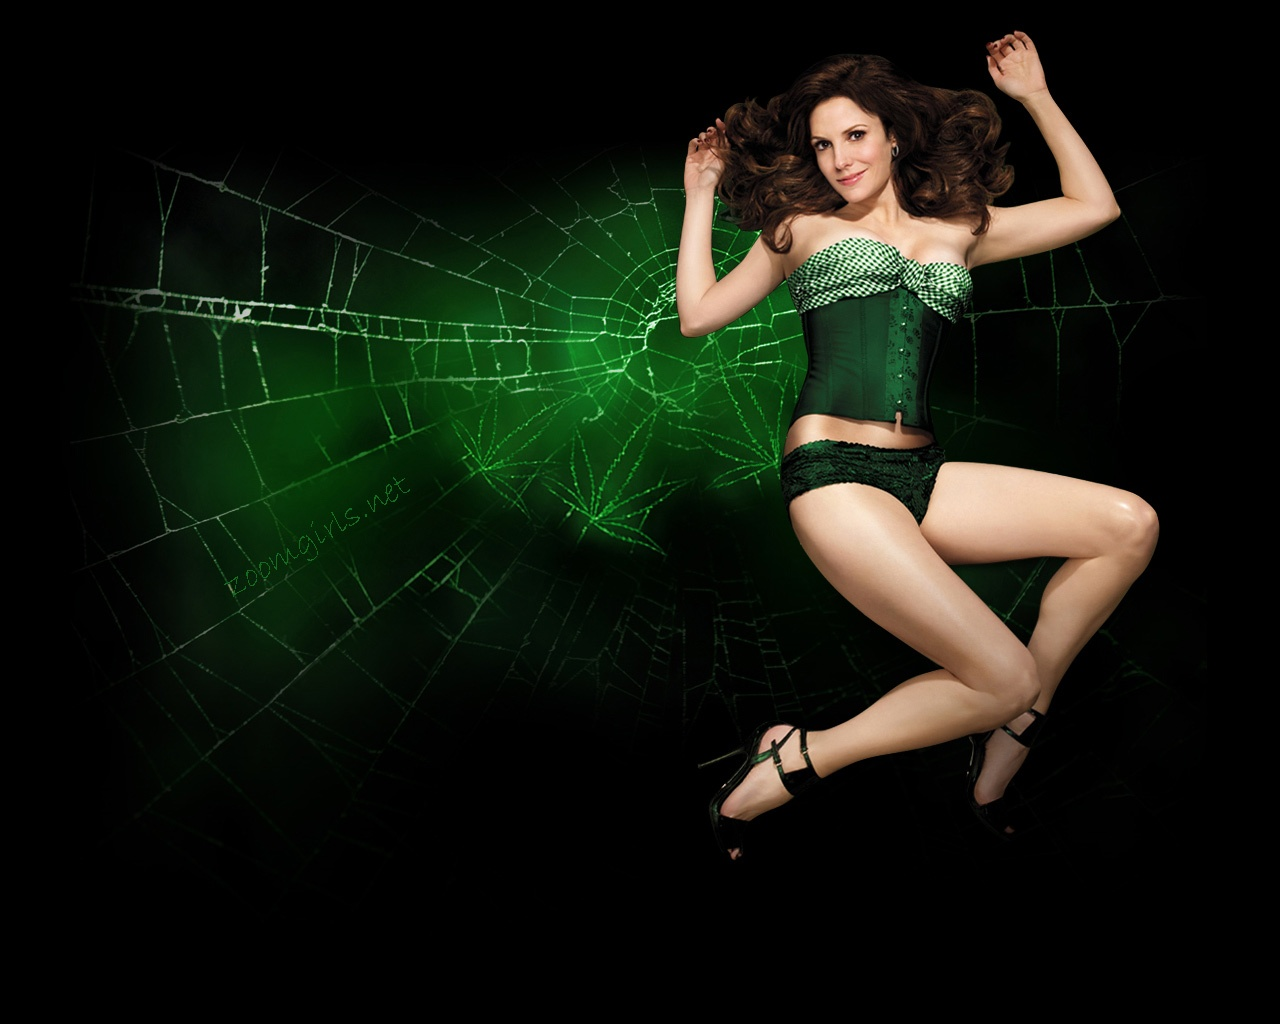 1280x1024 - Mary-Louise Parker Wallpapers 26